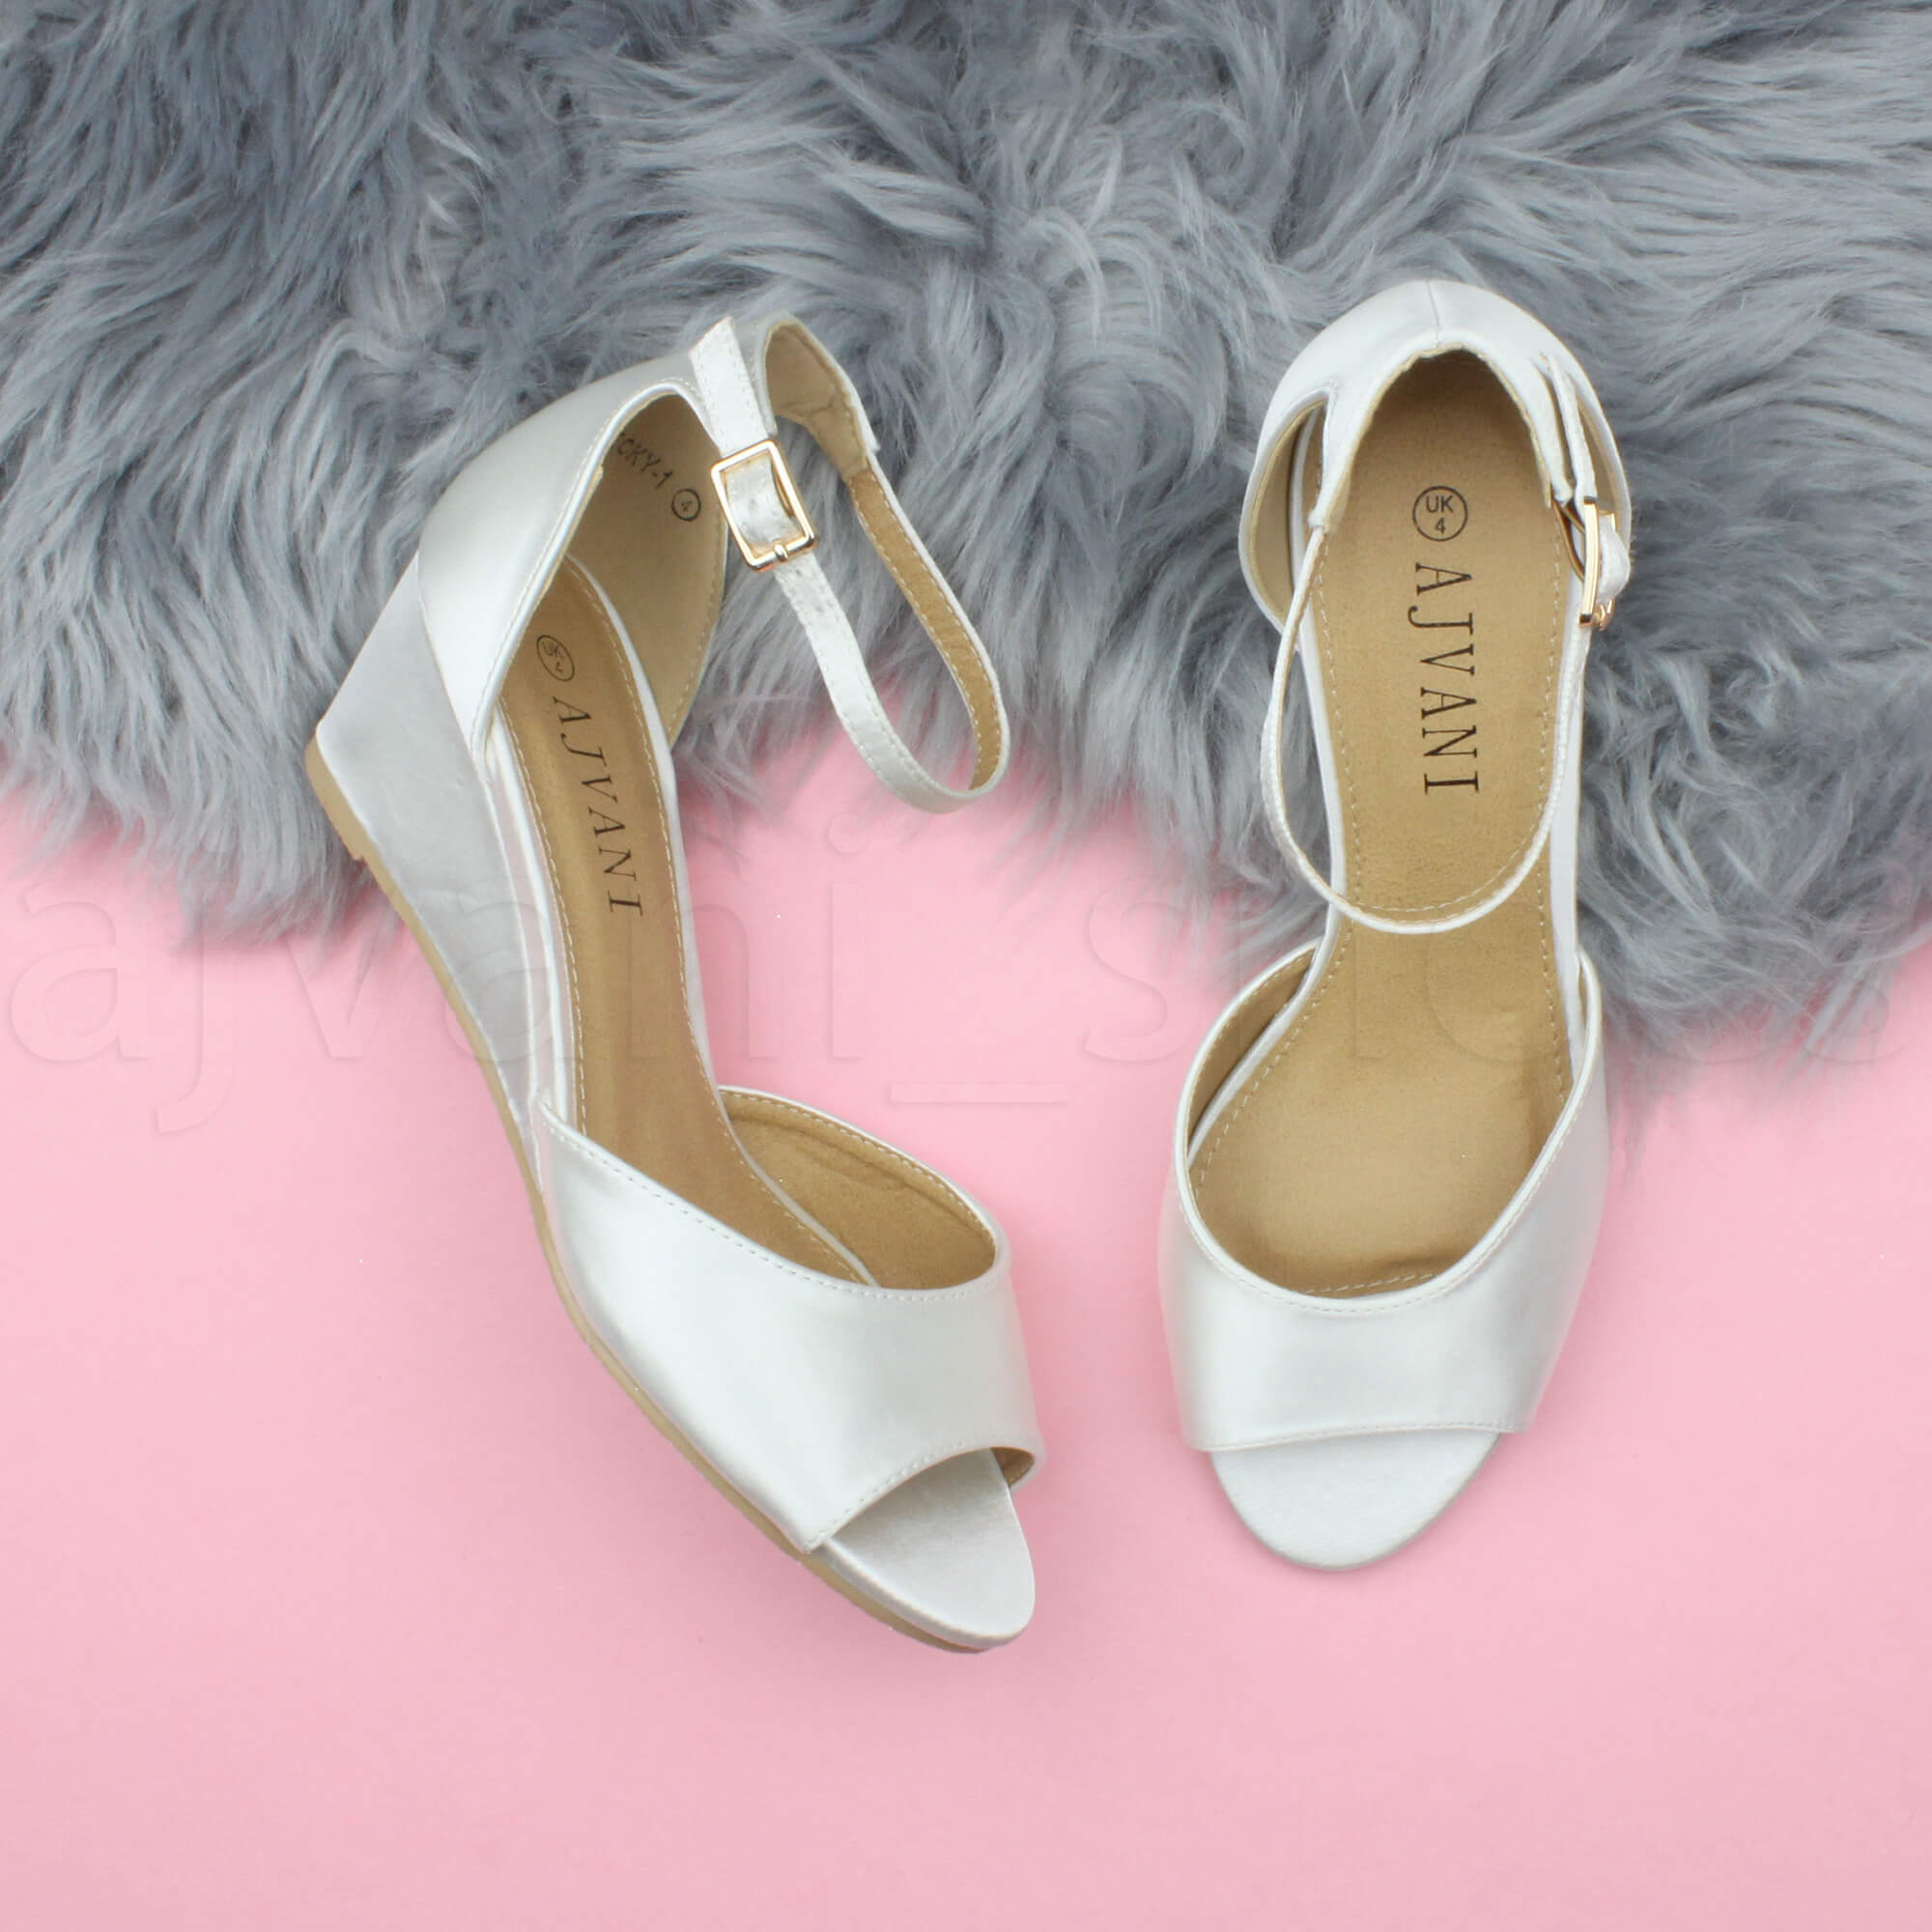 WOMENS-LADIES-LOW-MID-WEDGE-HEEL-ANKLE-STRAP-SMART-CASUAL-EVENING-SANDALS-SIZE thumbnail 69